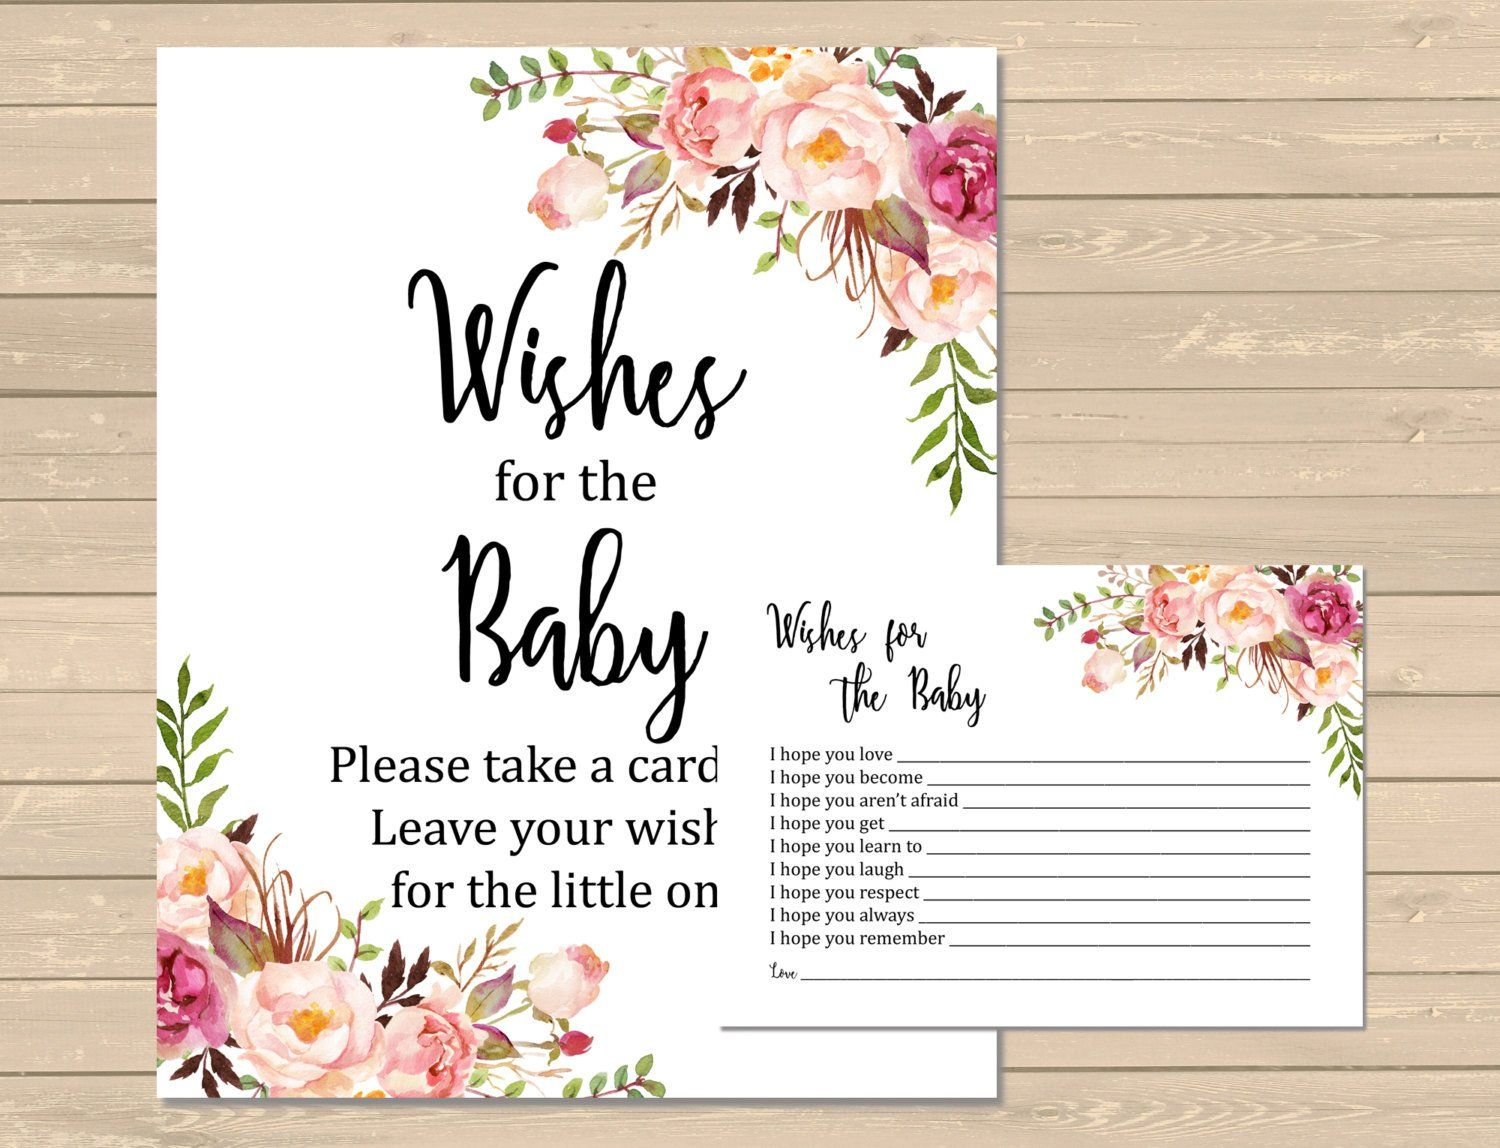 Floral wishes for baby printable cards and sign floral